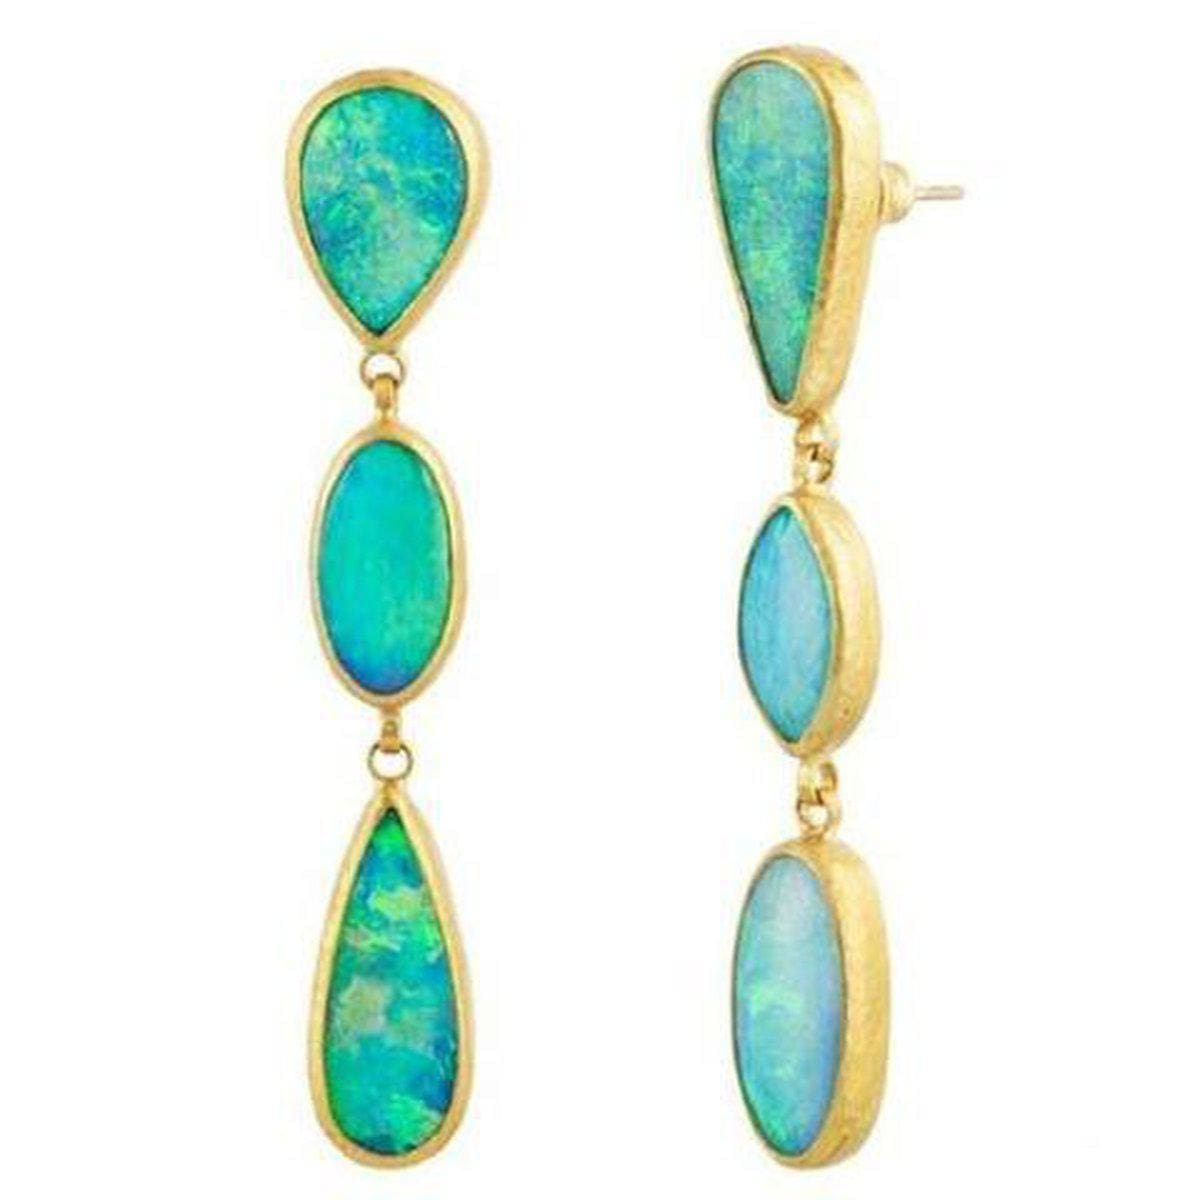 Amulet Hue 24K Gold Opal Earrings - E-U19961-OP-GURHAN-Renee Taylor Gallery